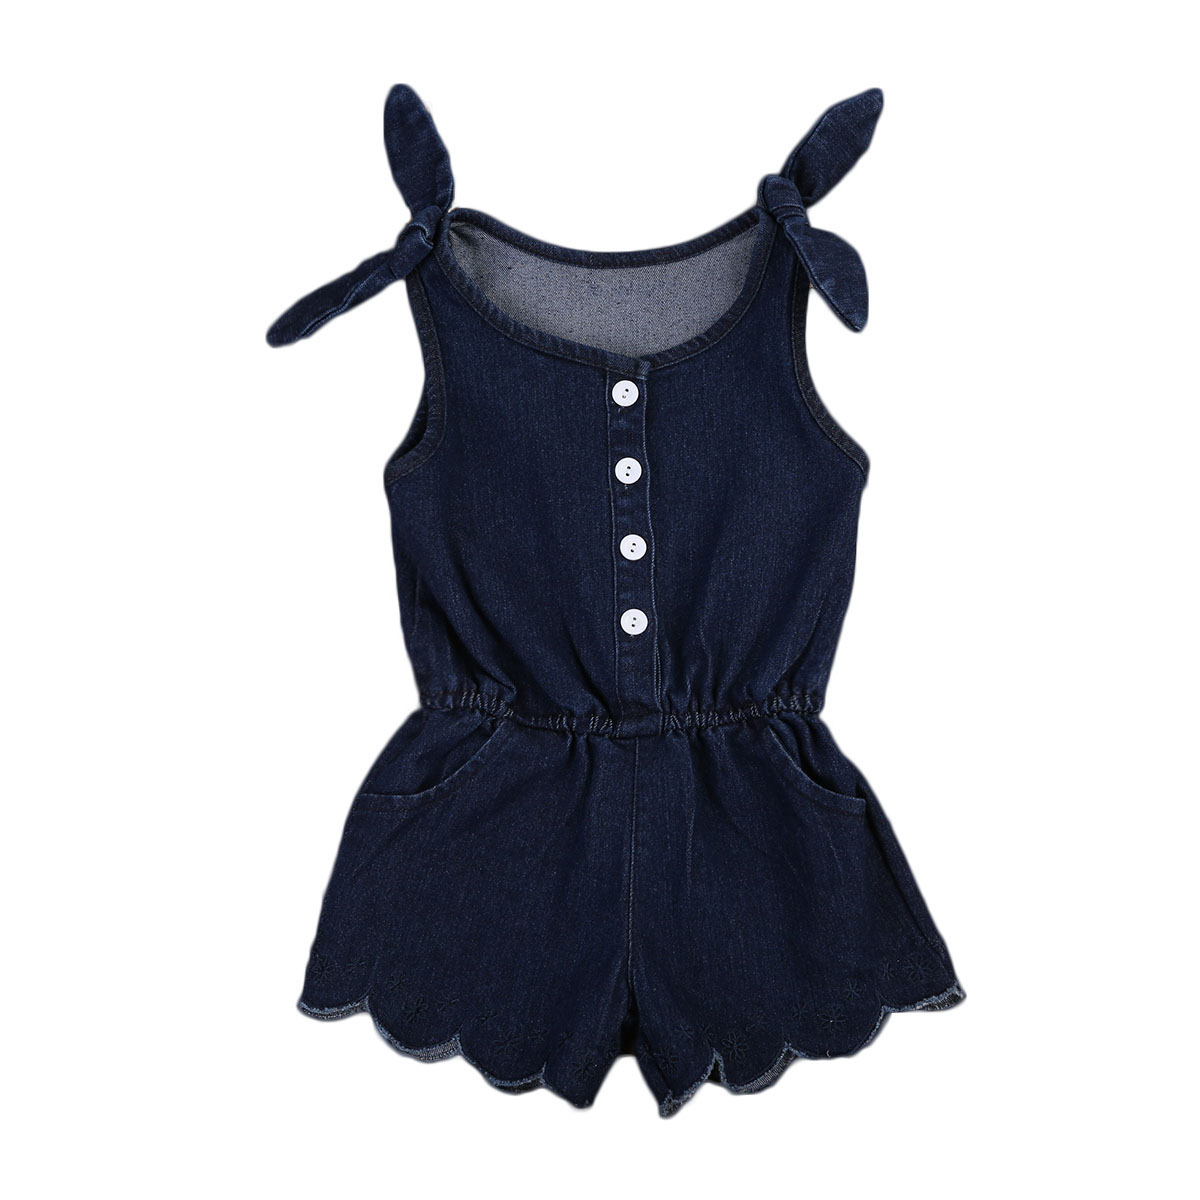 Newborn Infant Baby Girl Sleeveless Denim Romper Jumpsuit Toddler One-Pieces Outfits Summer Sunsuit Clothes 2017 summer toddler kids girls striped baby romper off shoulder flare sleeve cotton clothes jumpsuit outfits sunsuit 0 4t